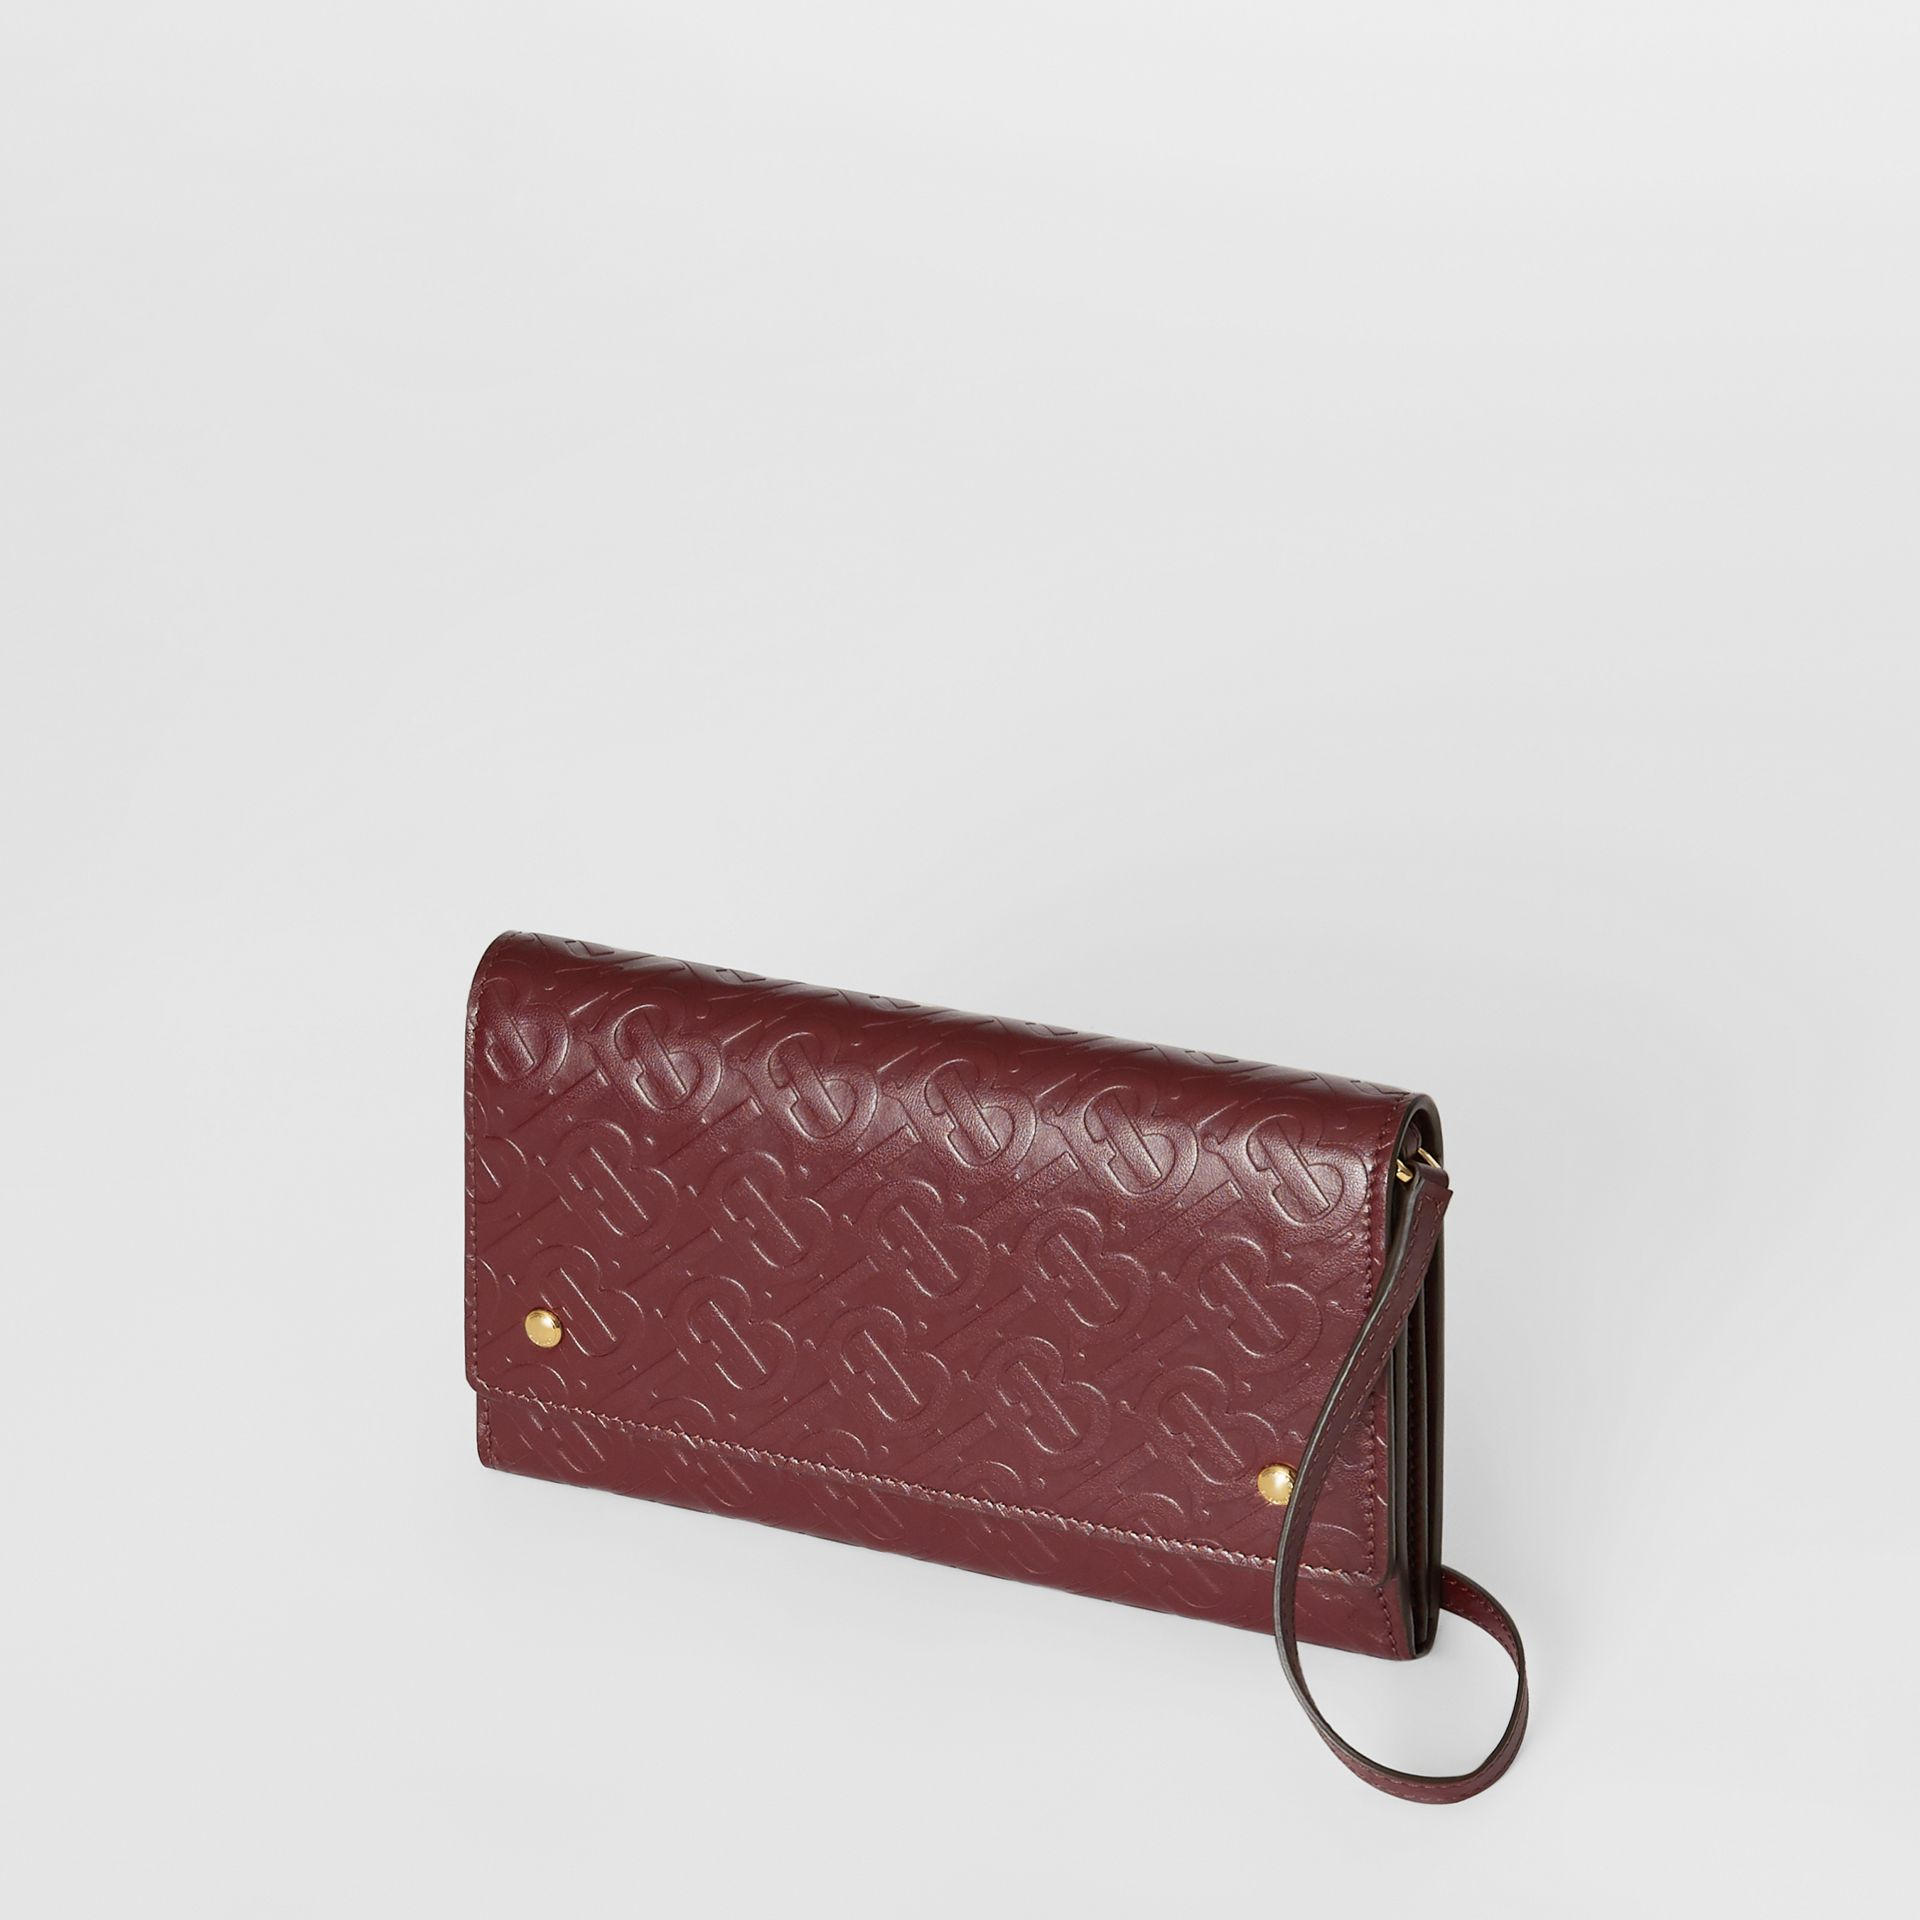 Portefeuille en cuir Monogram avec sangle amovible (Oxblood) - Femme | Burberry - photo de la galerie 3